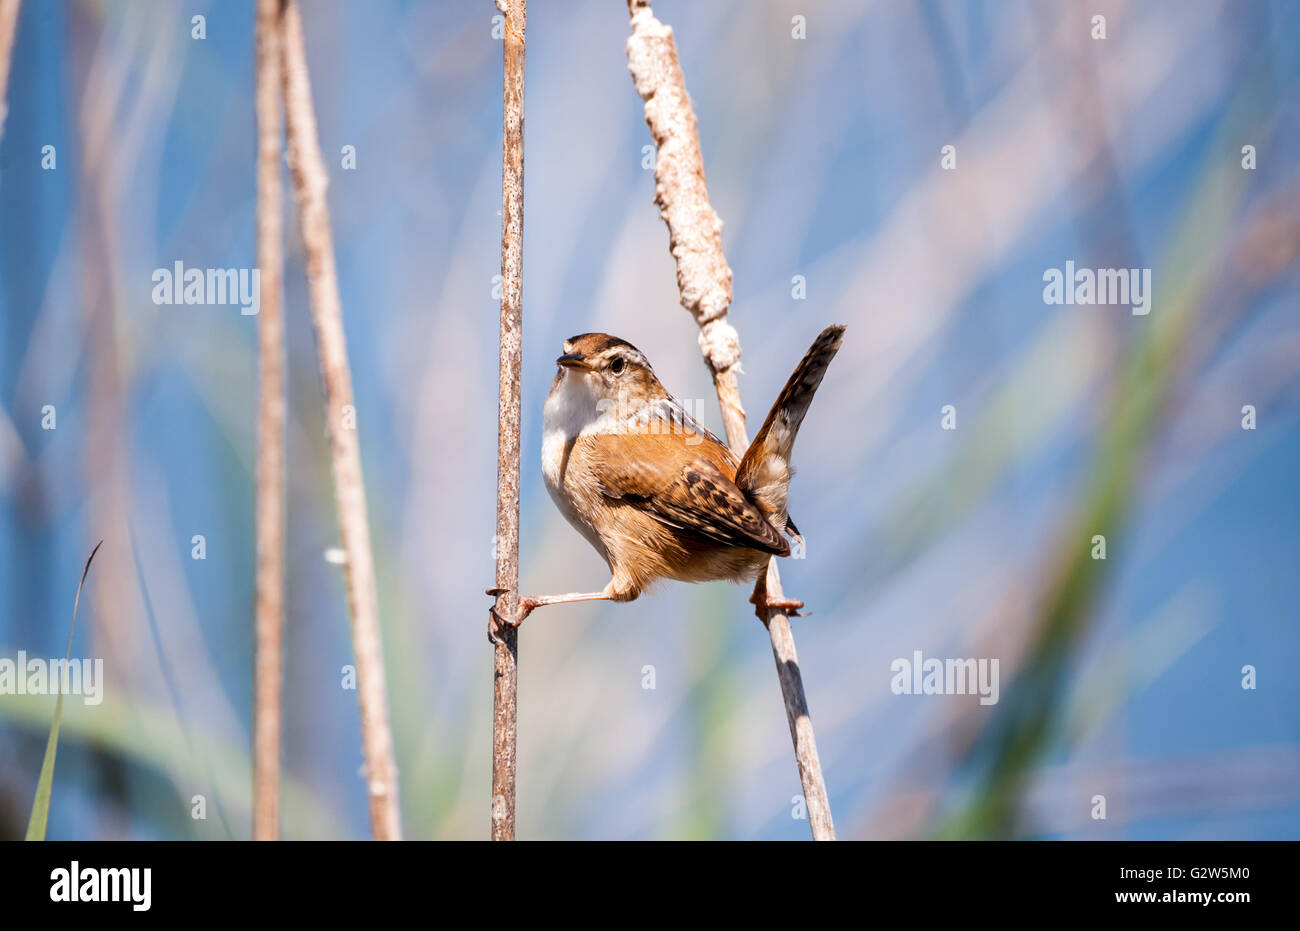 Marsh Wren holding onto the reeds with both feet and looking straight at the camera. - Stock Image